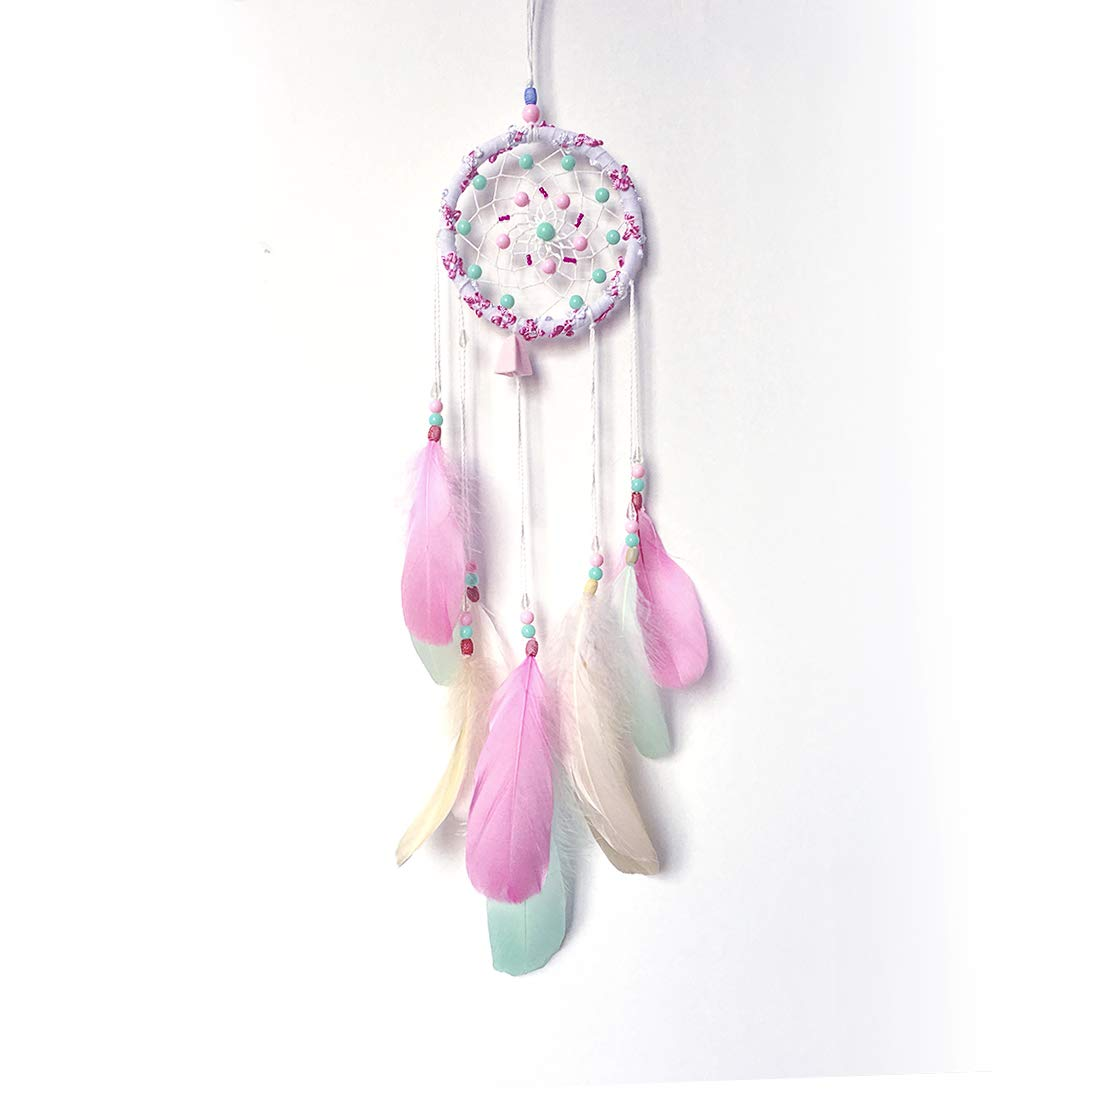 Feather Dream Catcher Hanging Ornament Gift Handmade Traditional Feather Dreamcatcher Wall Hanging Car Hanging Home Decoration Decor Ornament Craft for Kids Girls Home Bedroom (Colourful)